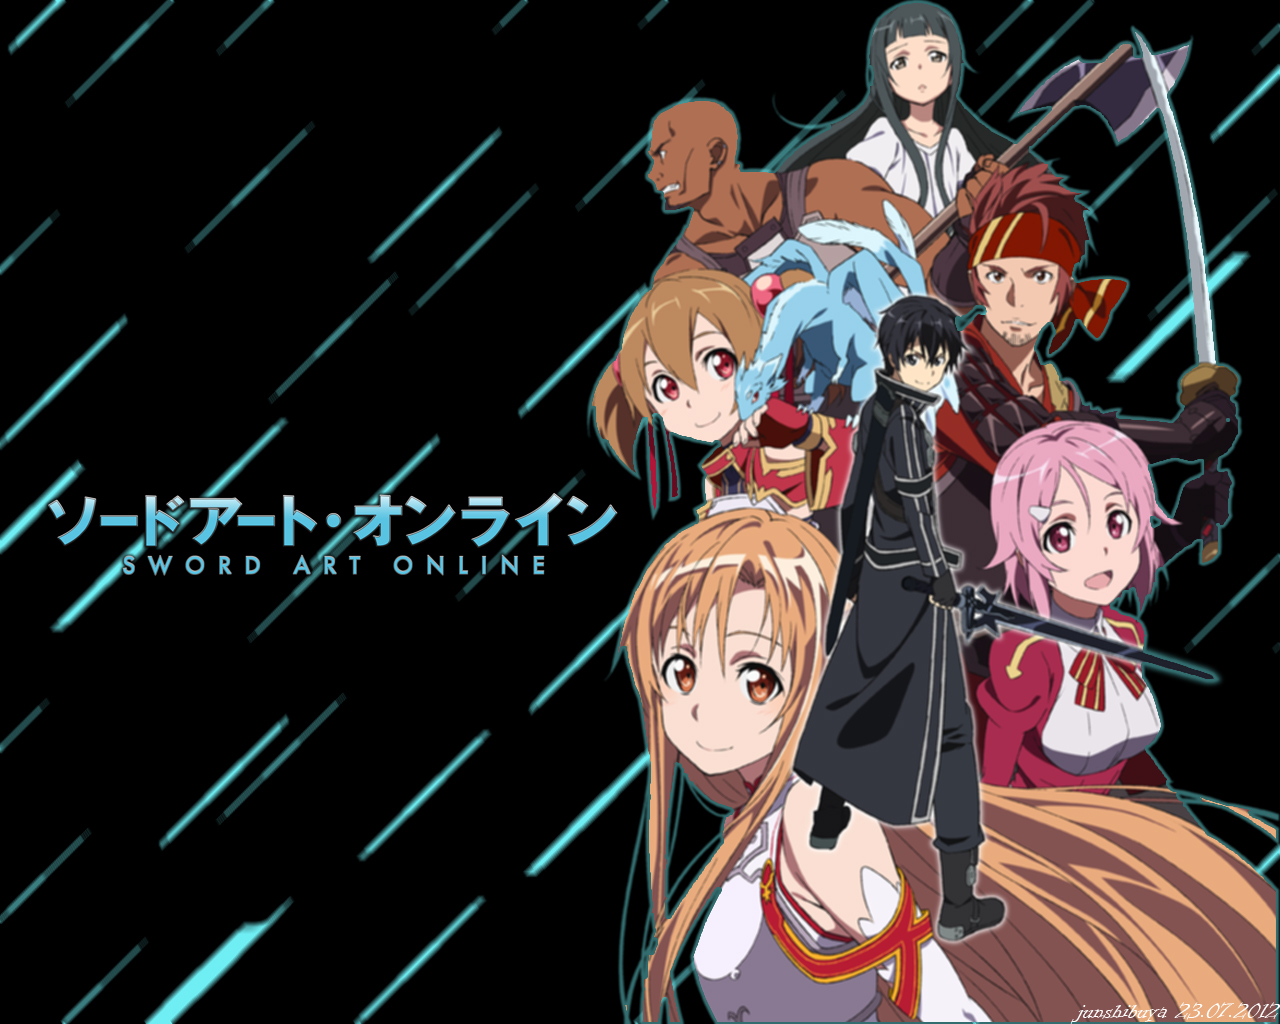 Sword Art Online Free Hd 3d Wallpaper 1080p Wallpaper